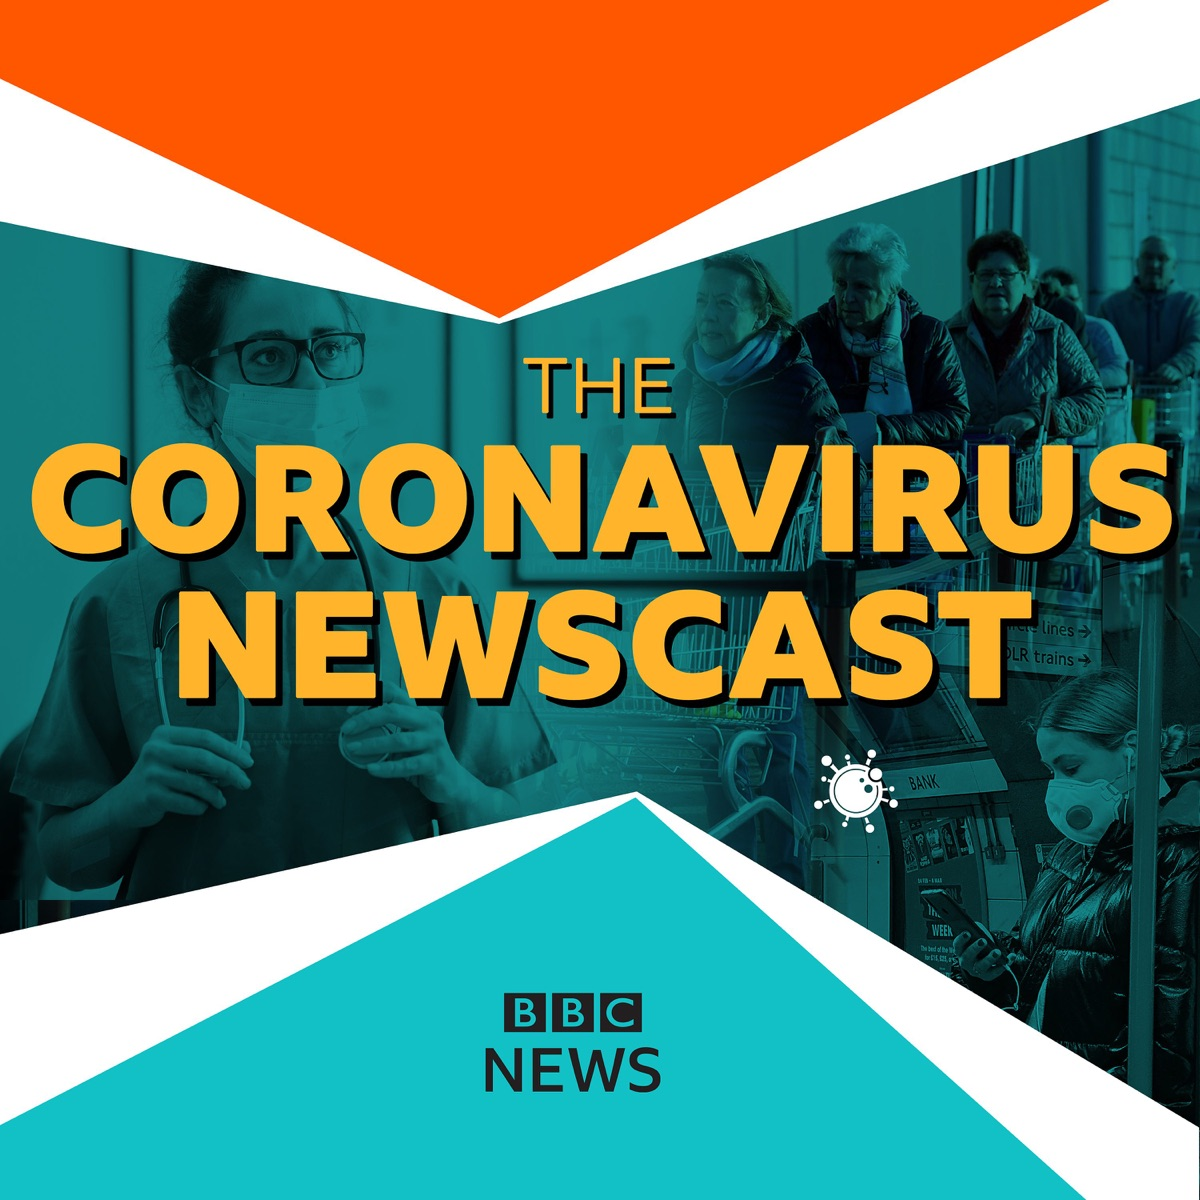 The Coronavirus Newscast